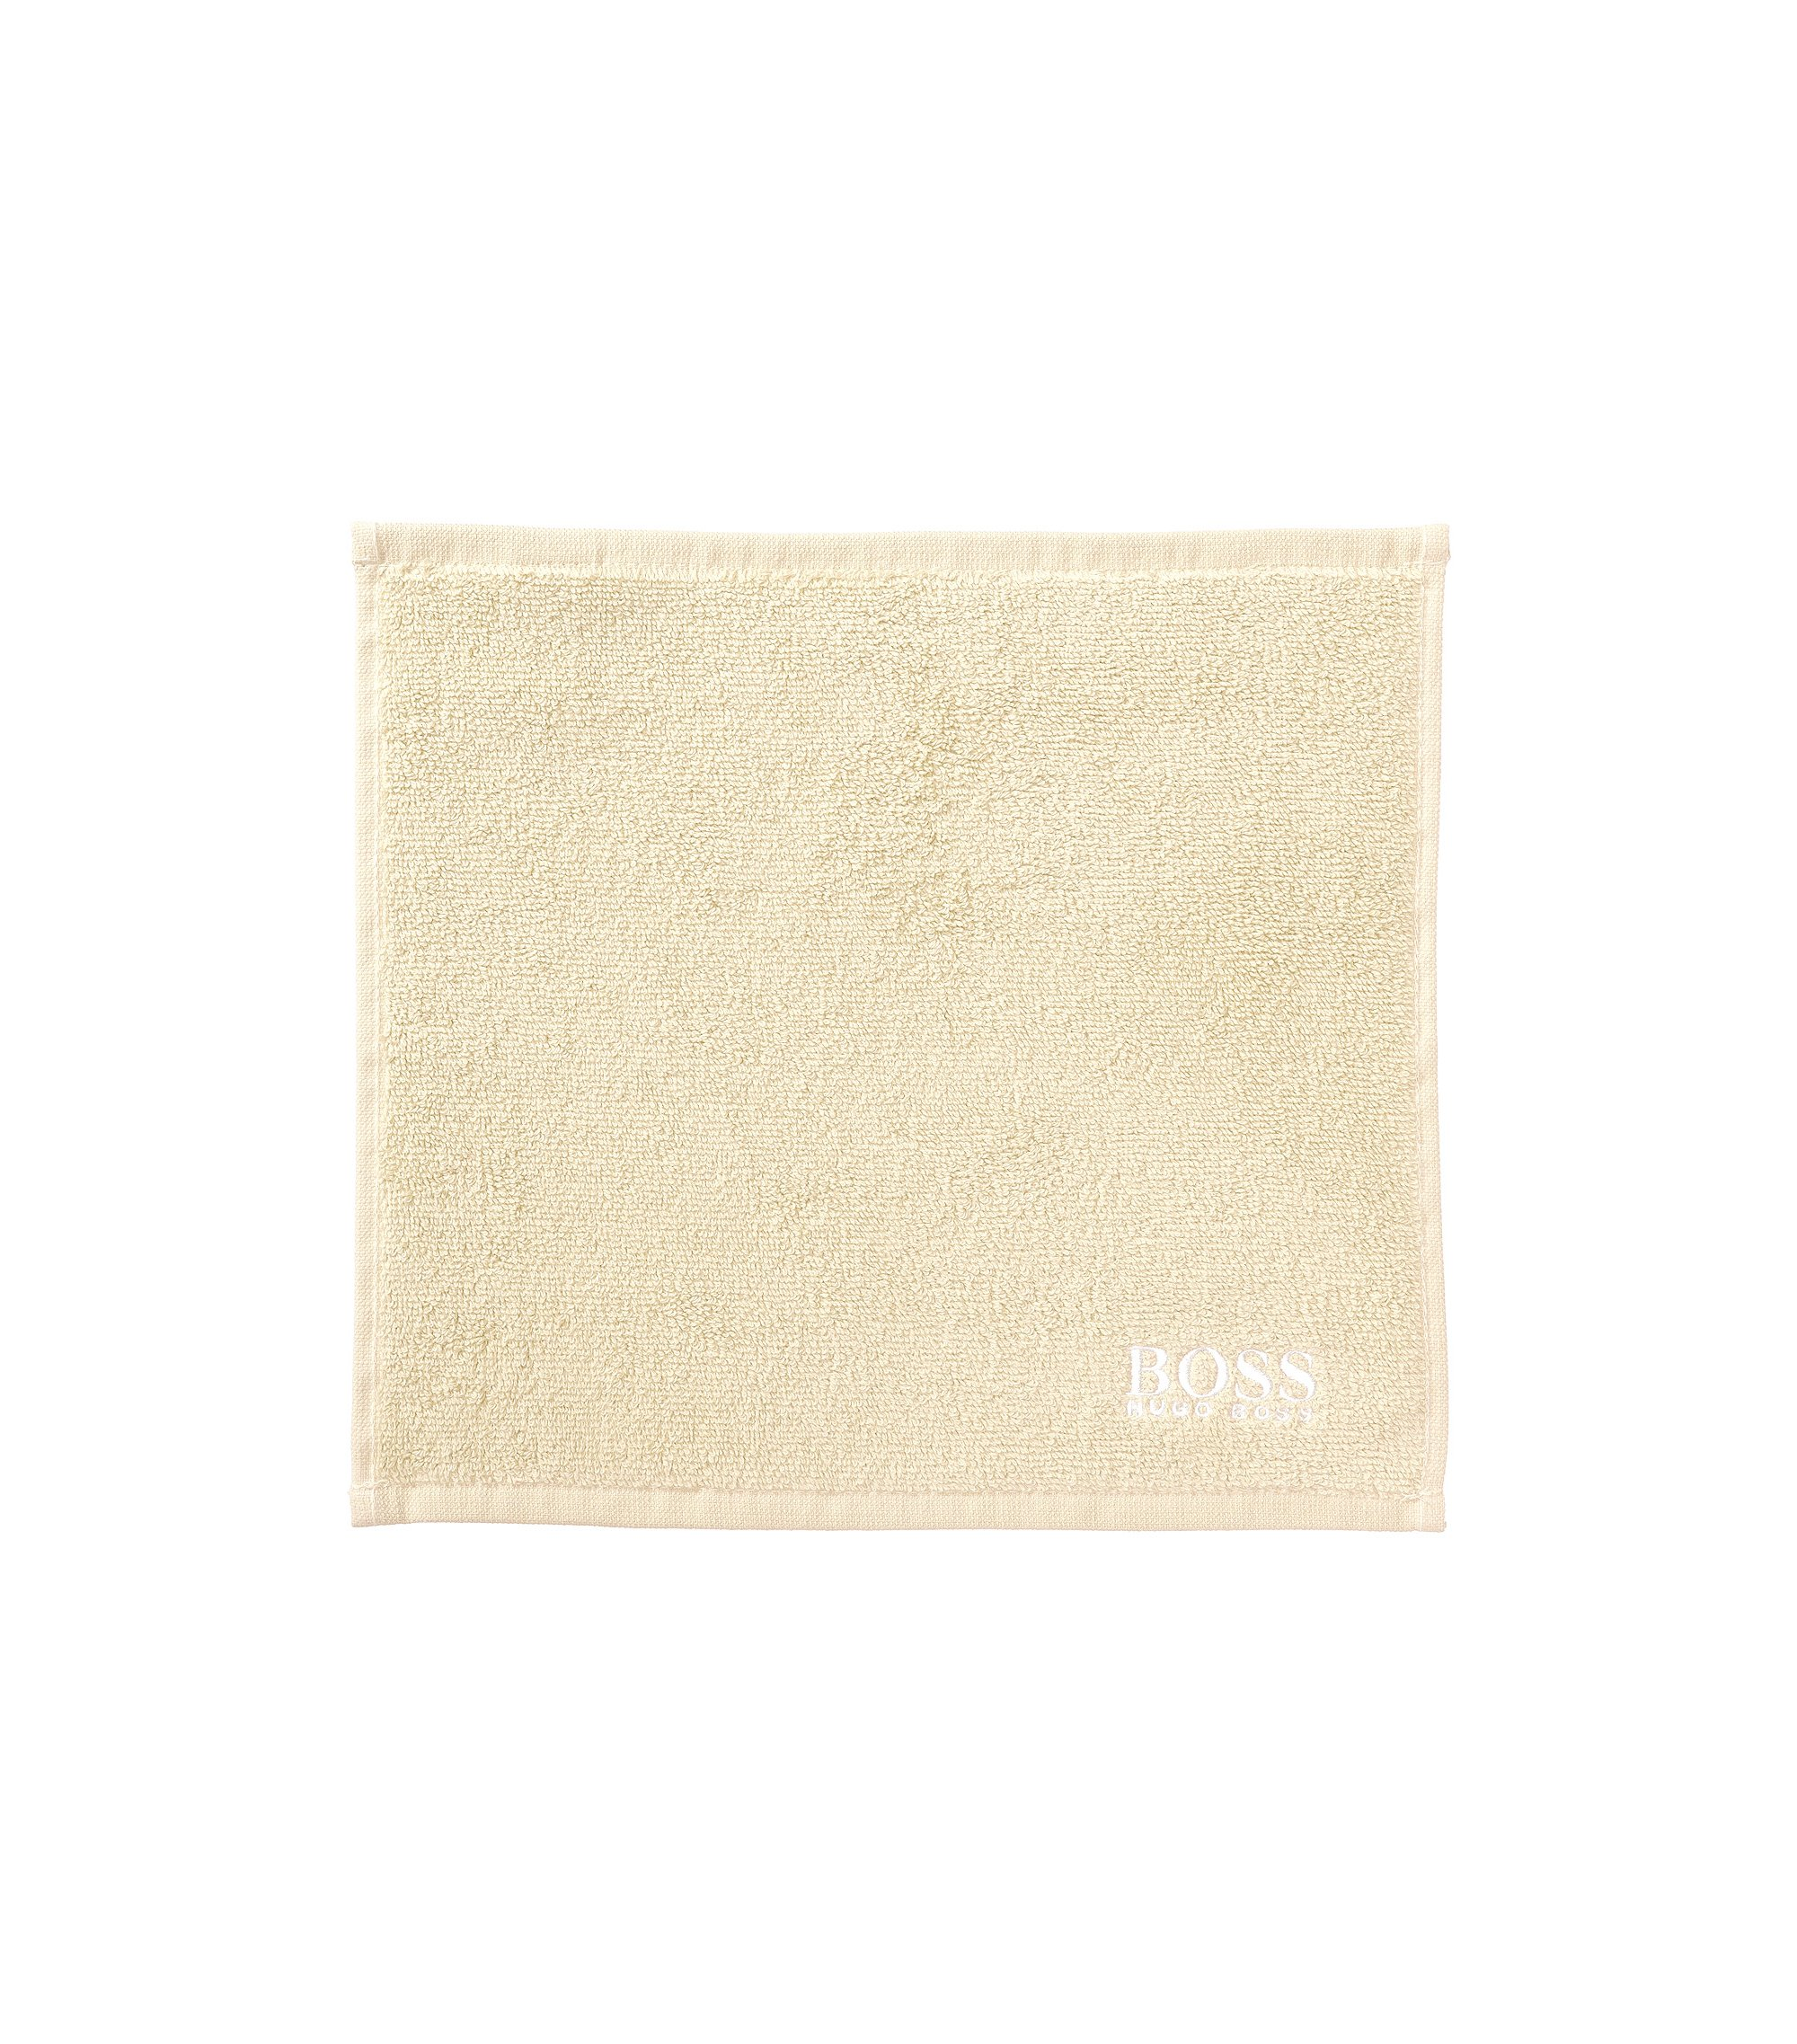 Finest Egyptian cotton face cloth with logo embroidery, Light Beige